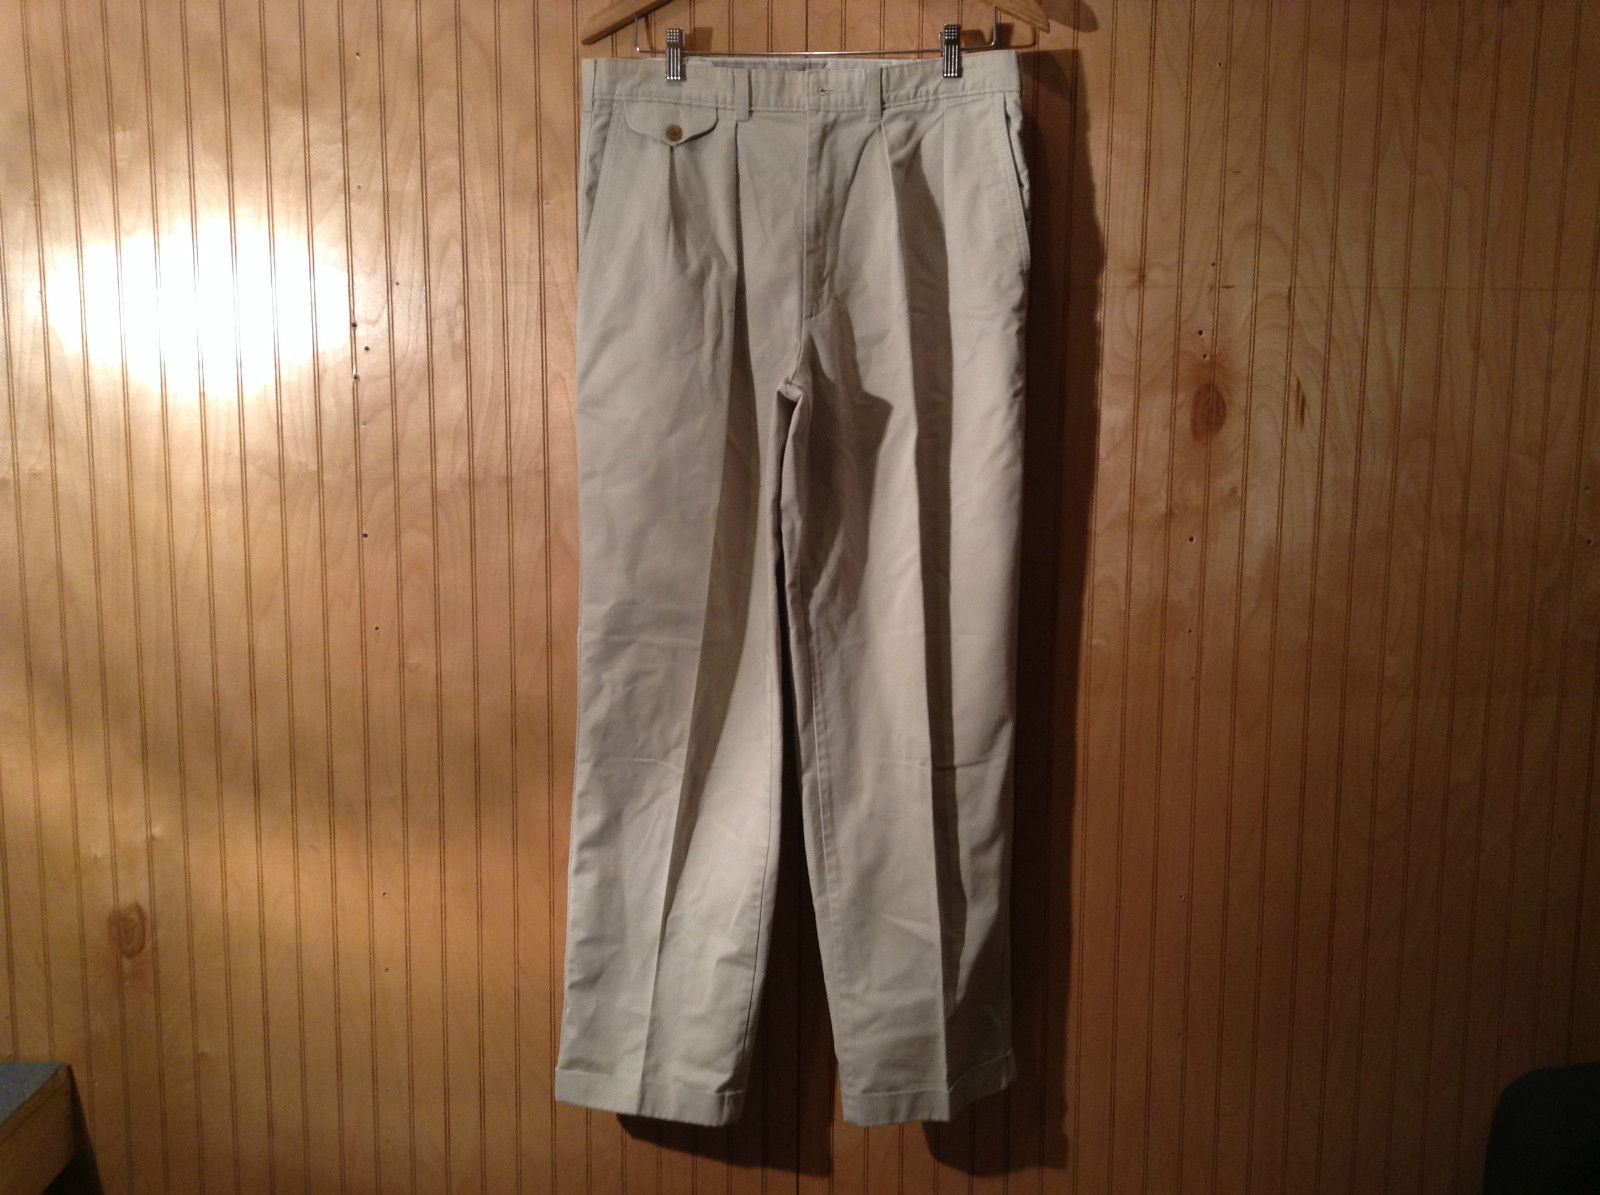 Savane Process 2000 Pleated Front Tan Gray Pants No Size Tag Measurements Below